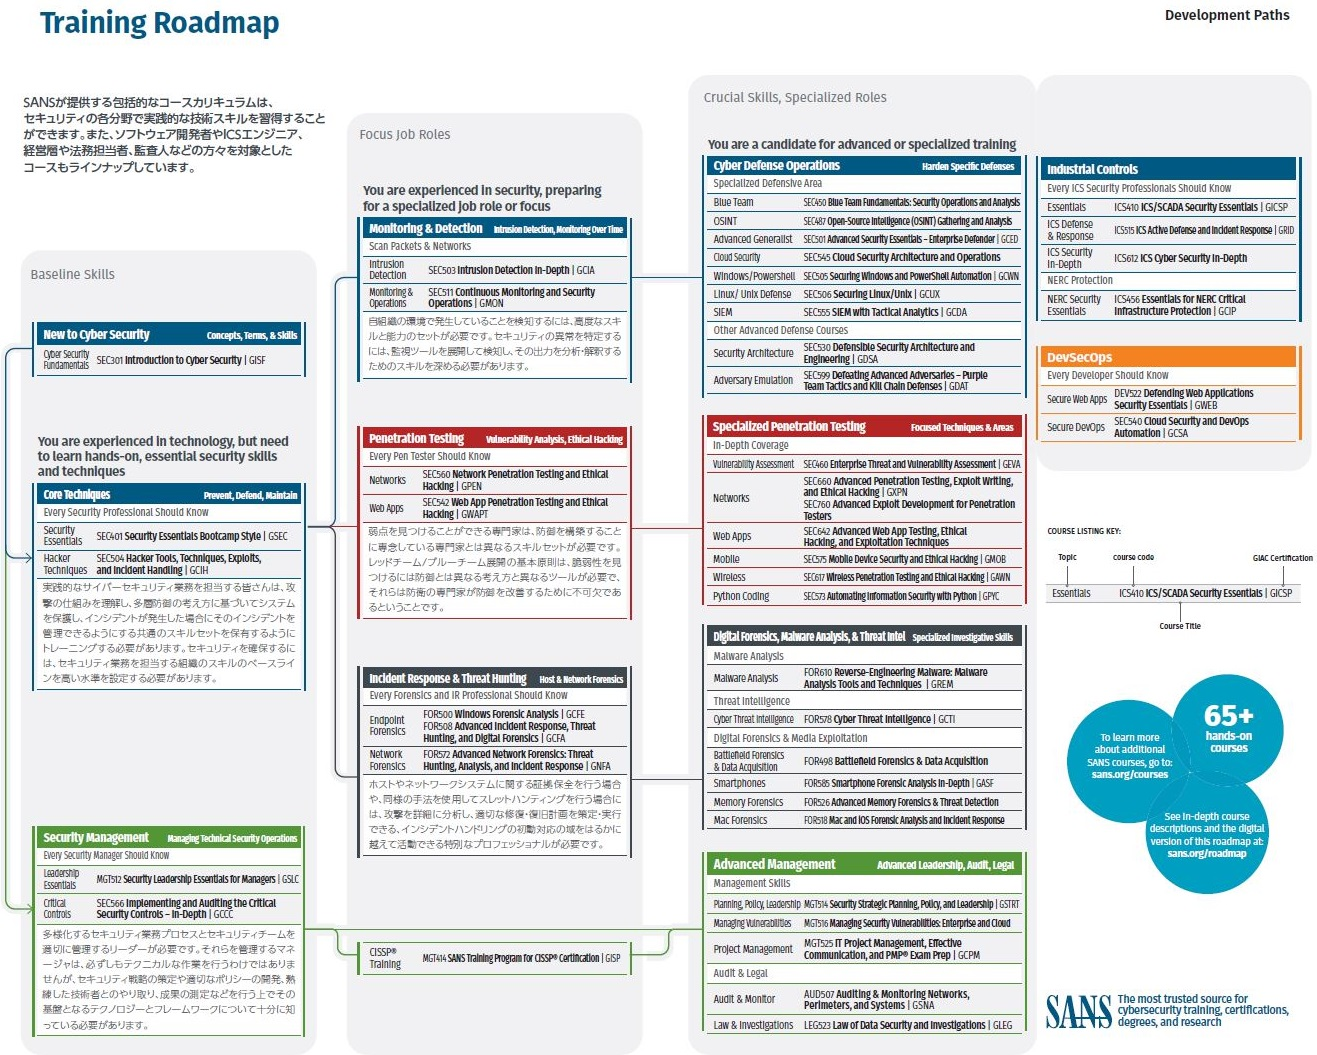 sans_training_roadmap_FY2020